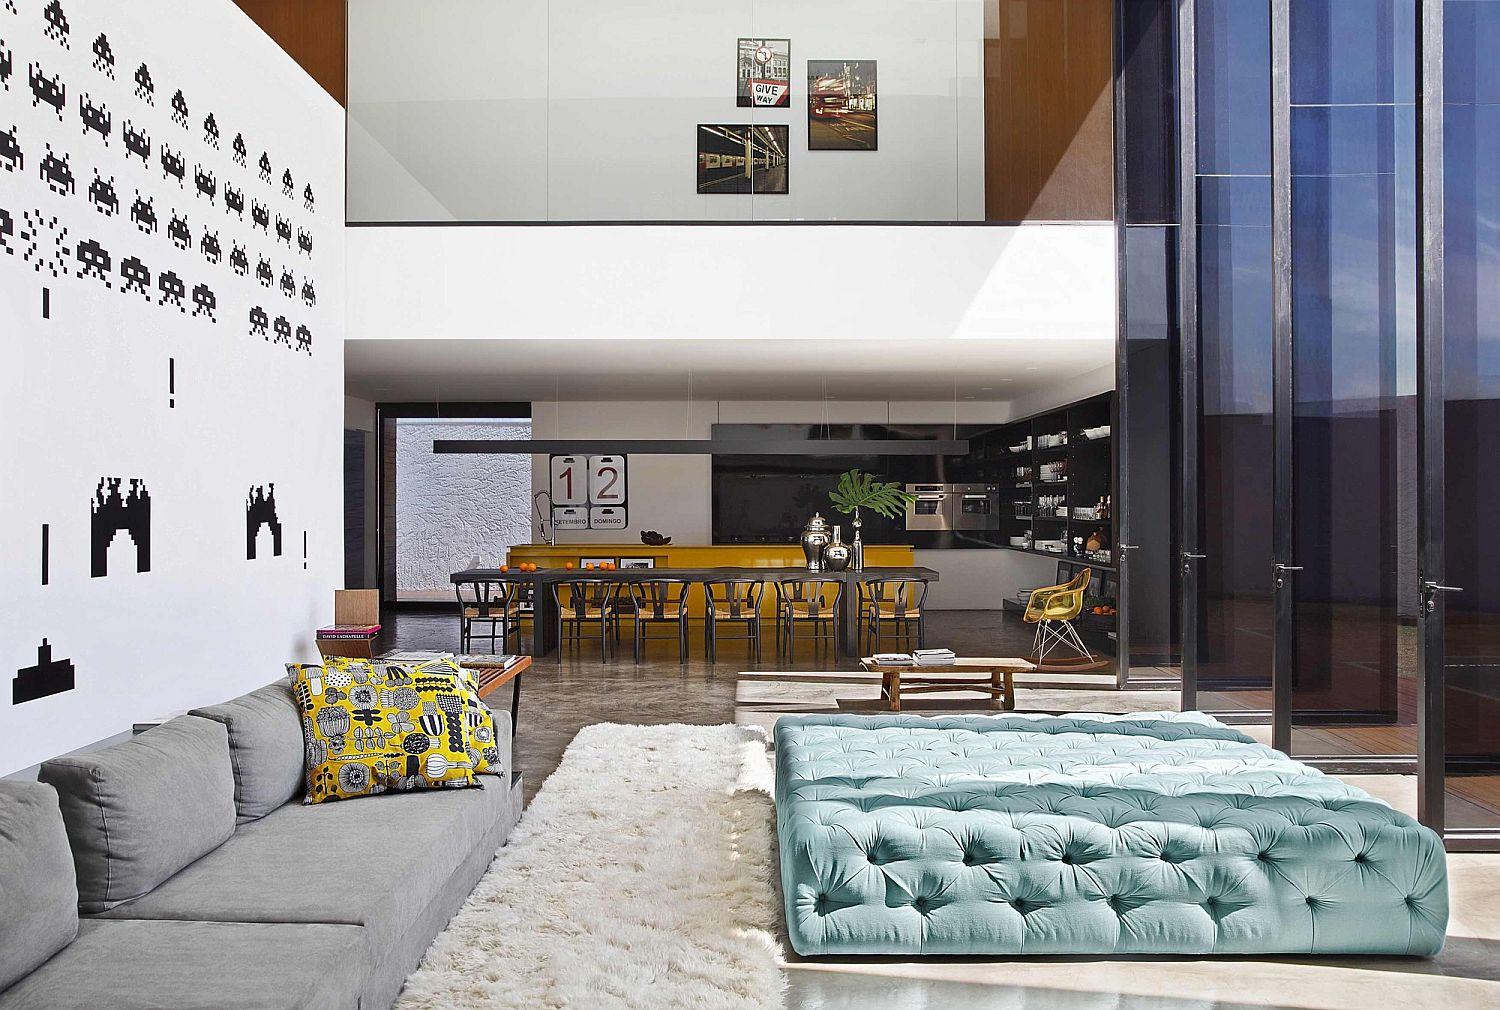 Spacious lower level living area with modular seating